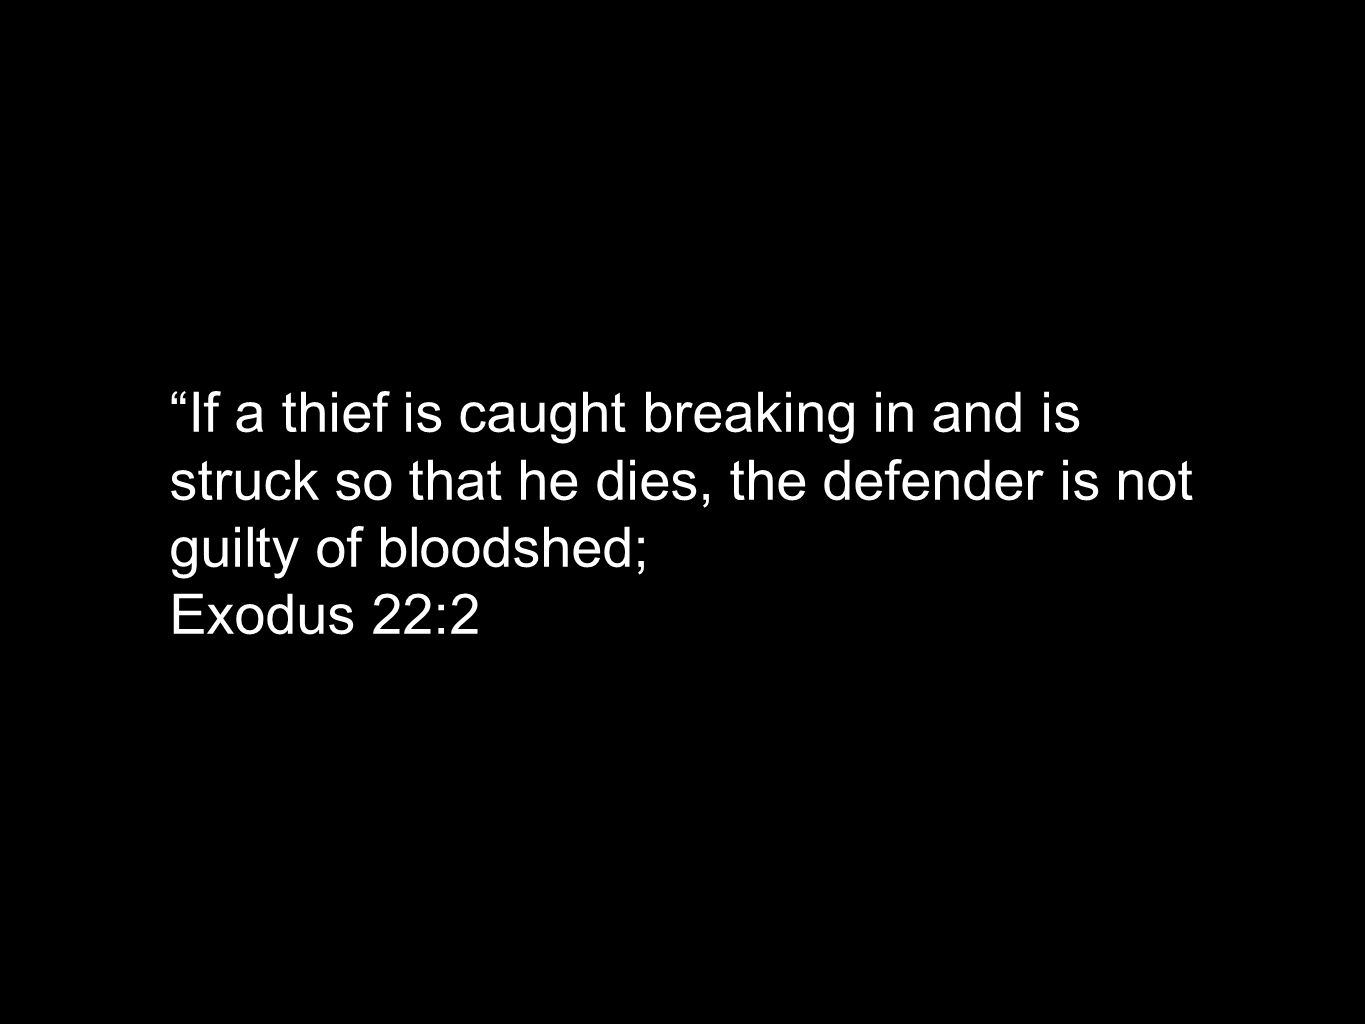 If a thief is caught breaking in and is struck so that he dies, the defender is not guilty of bloodshed; Exodus 22:2